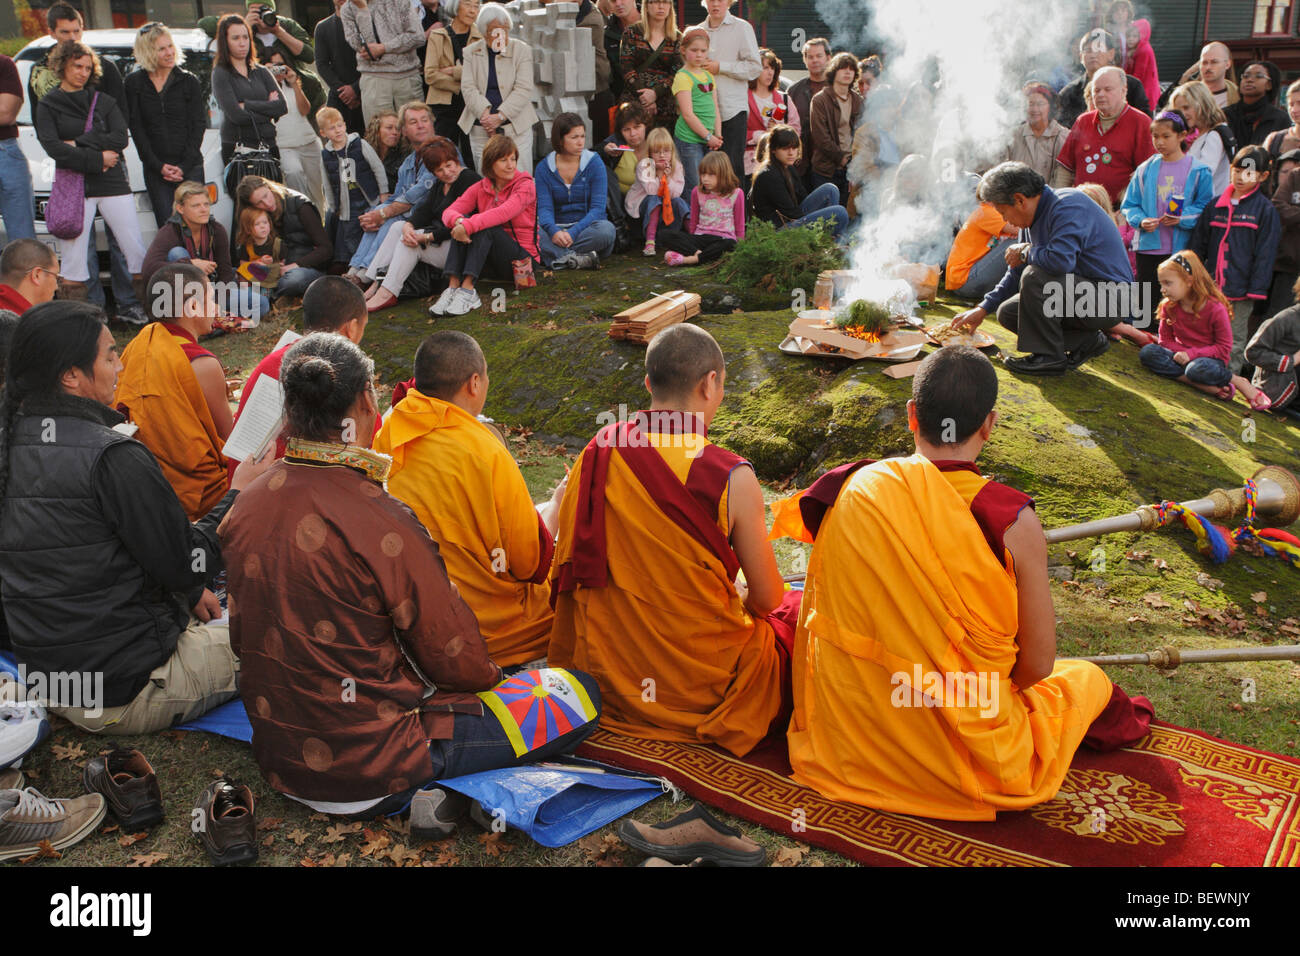 Tibetan Monks performing purification ceremony-Victoria, British Columbia, Canada. - Stock Image